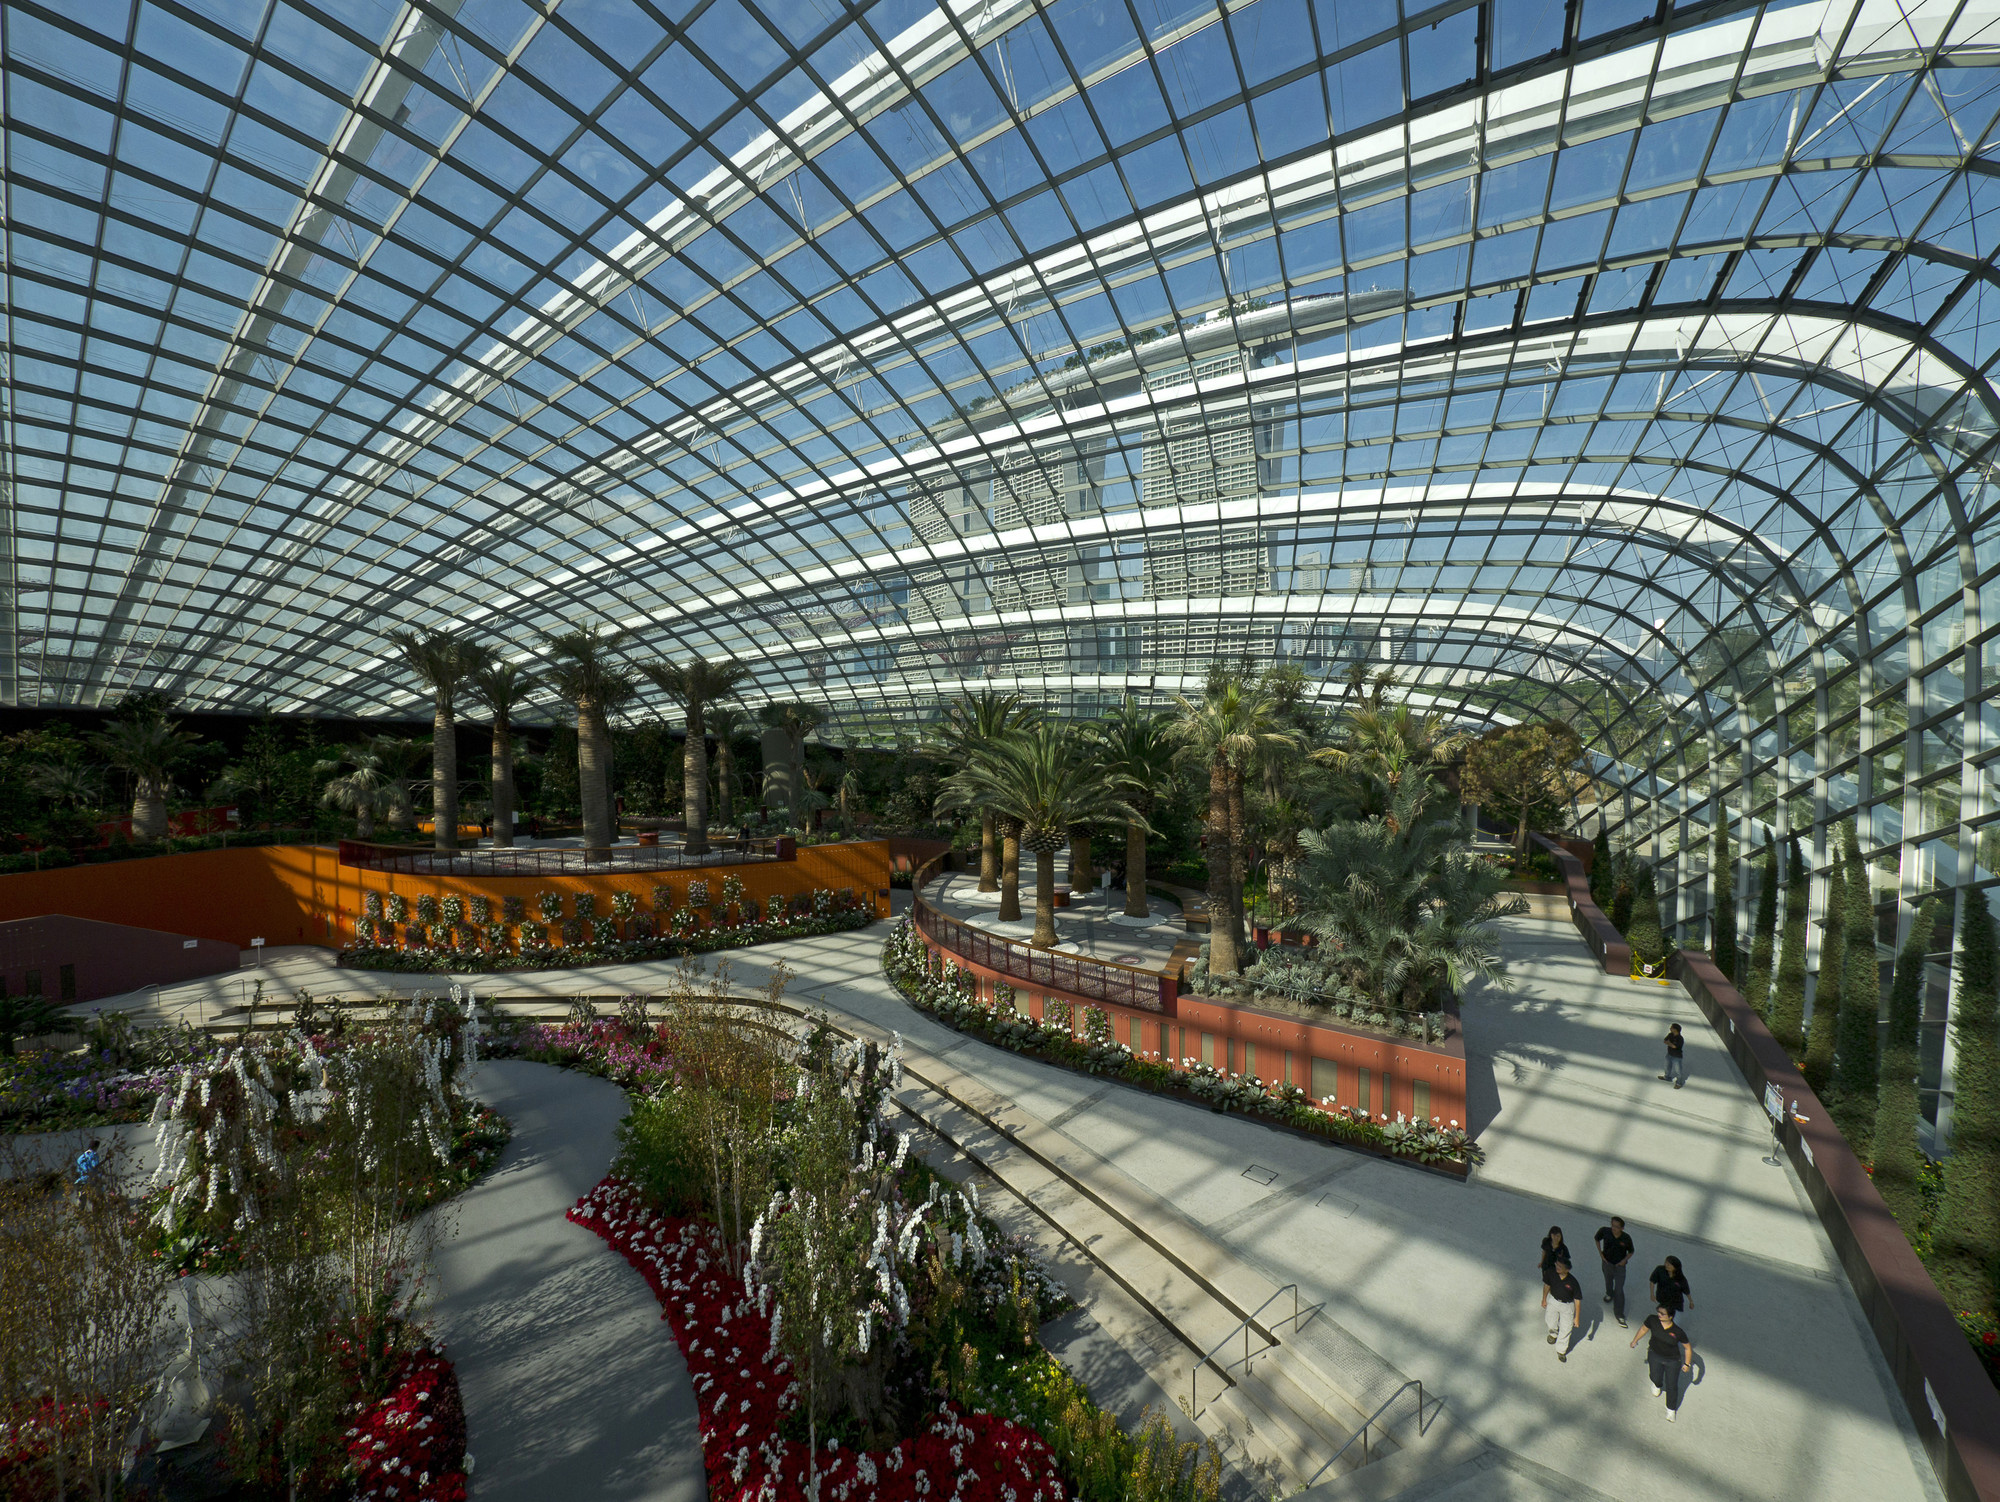 cooled conservatories at gardens by the bay wilkinson